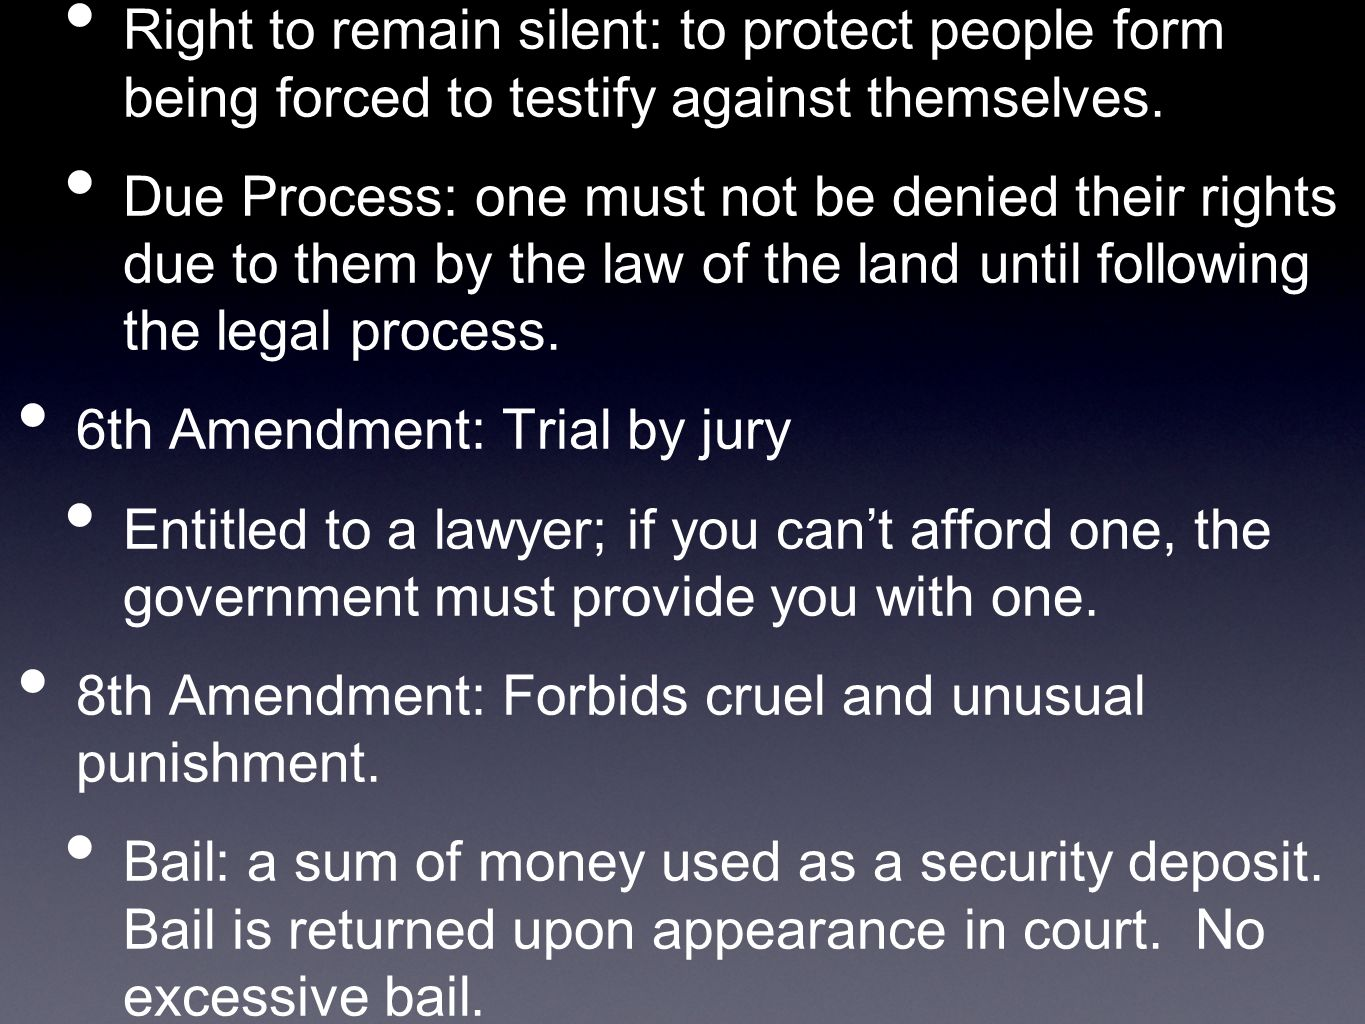 Right to remain silent: to protect people form being forced to testify against themselves.